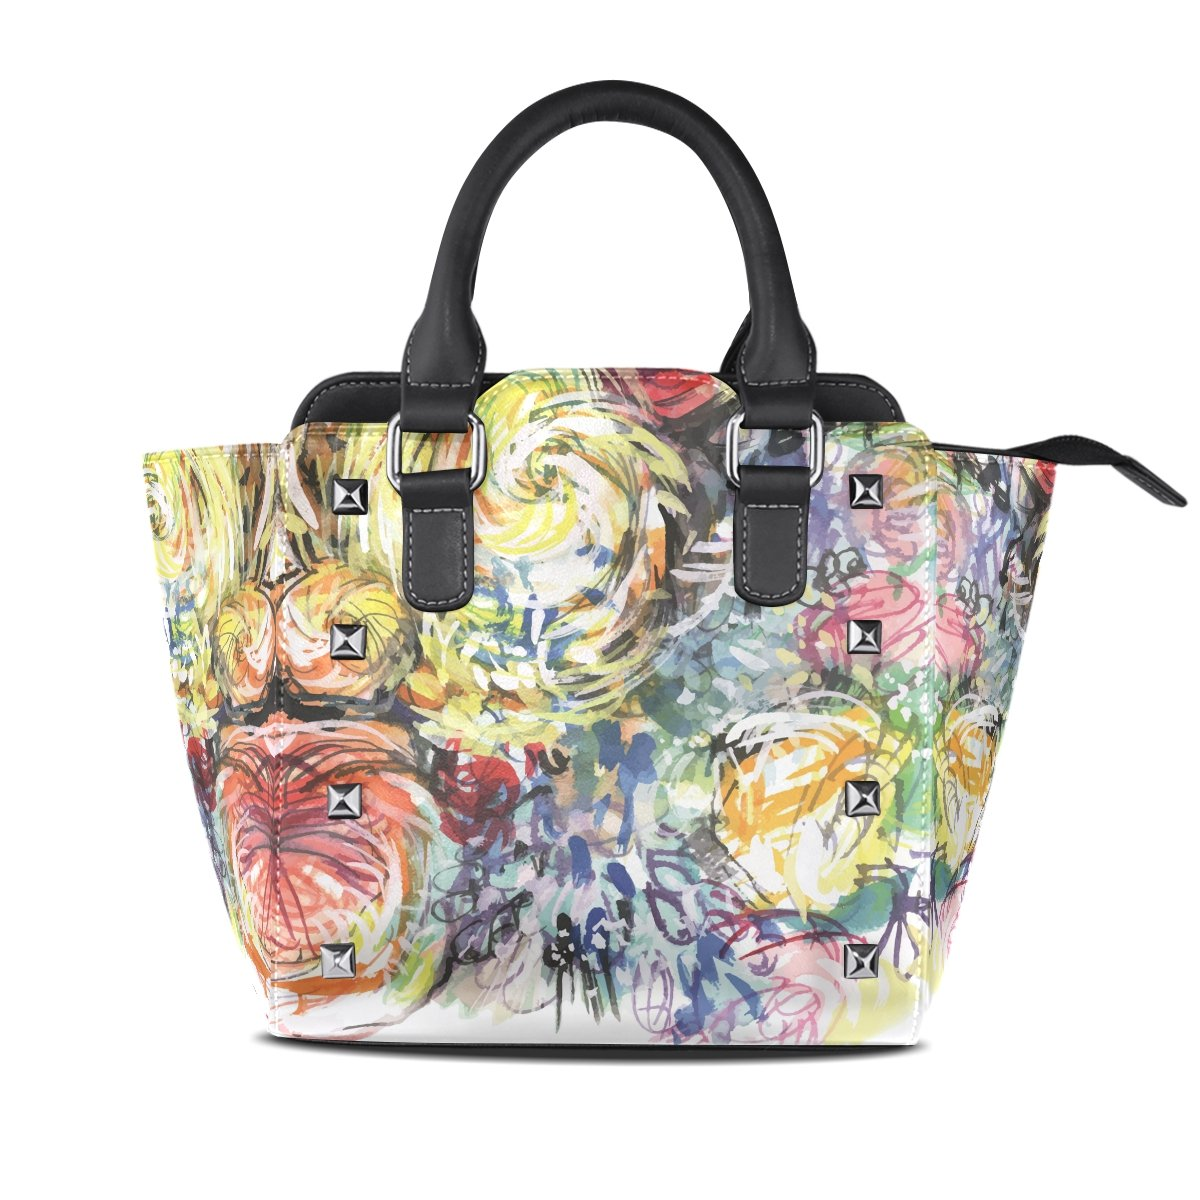 Womens Genuine Leather Hangbags Tote Bags Abstract Water color Map Purse Shoulder Bags